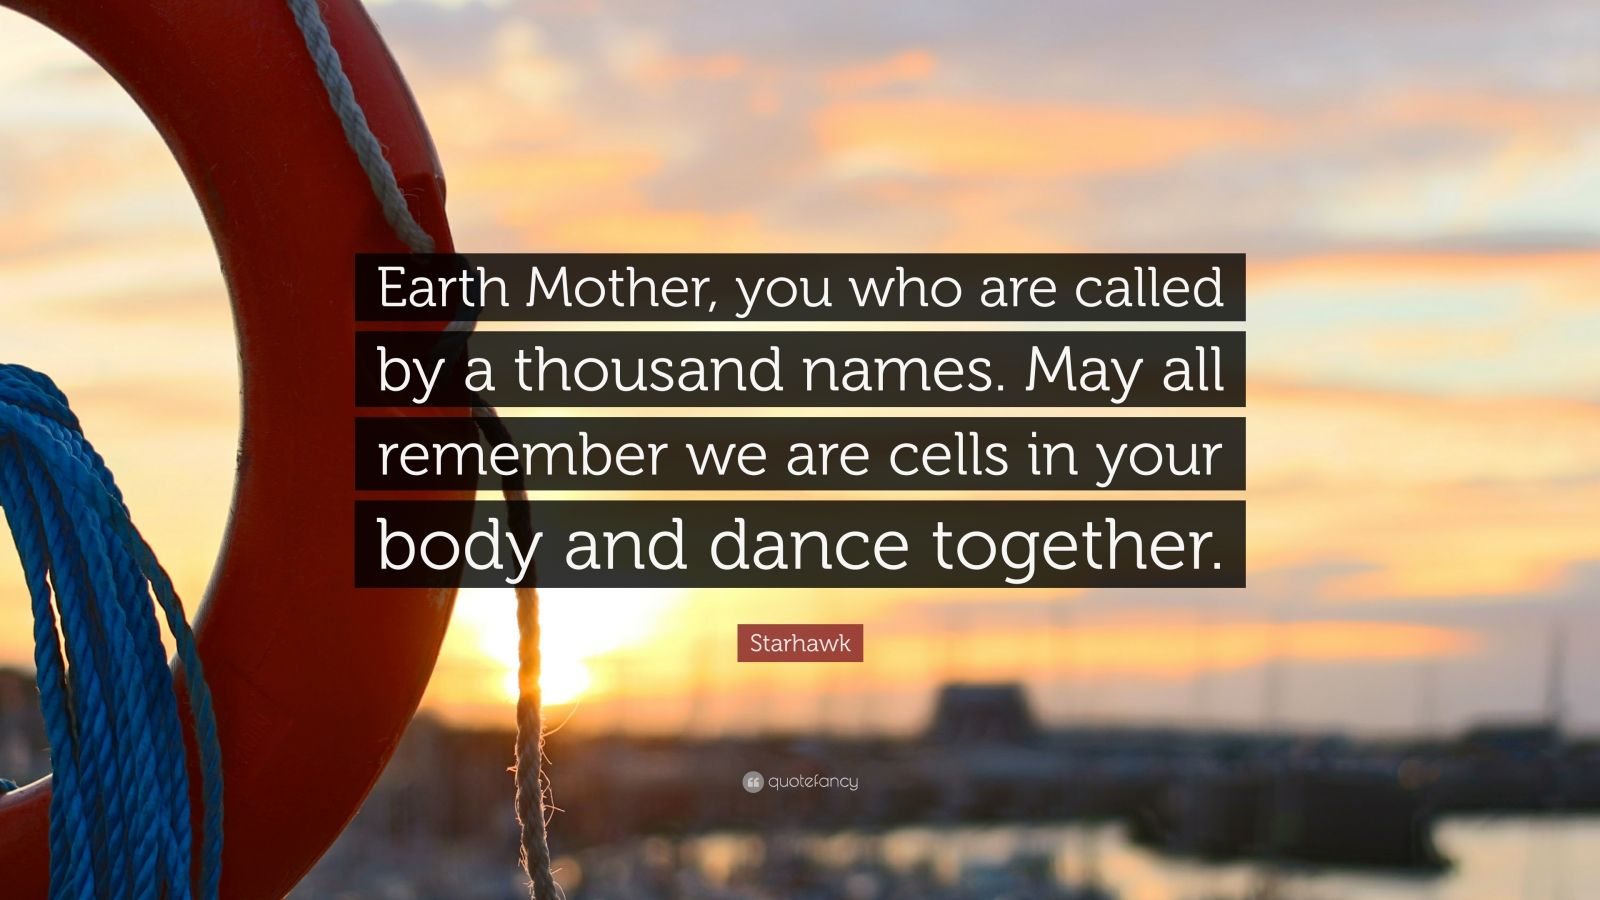 """Starhawk Quote: """"Earth Mother, you who are called by a thousand names. May all remember we are cells in your body and dance together."""""""